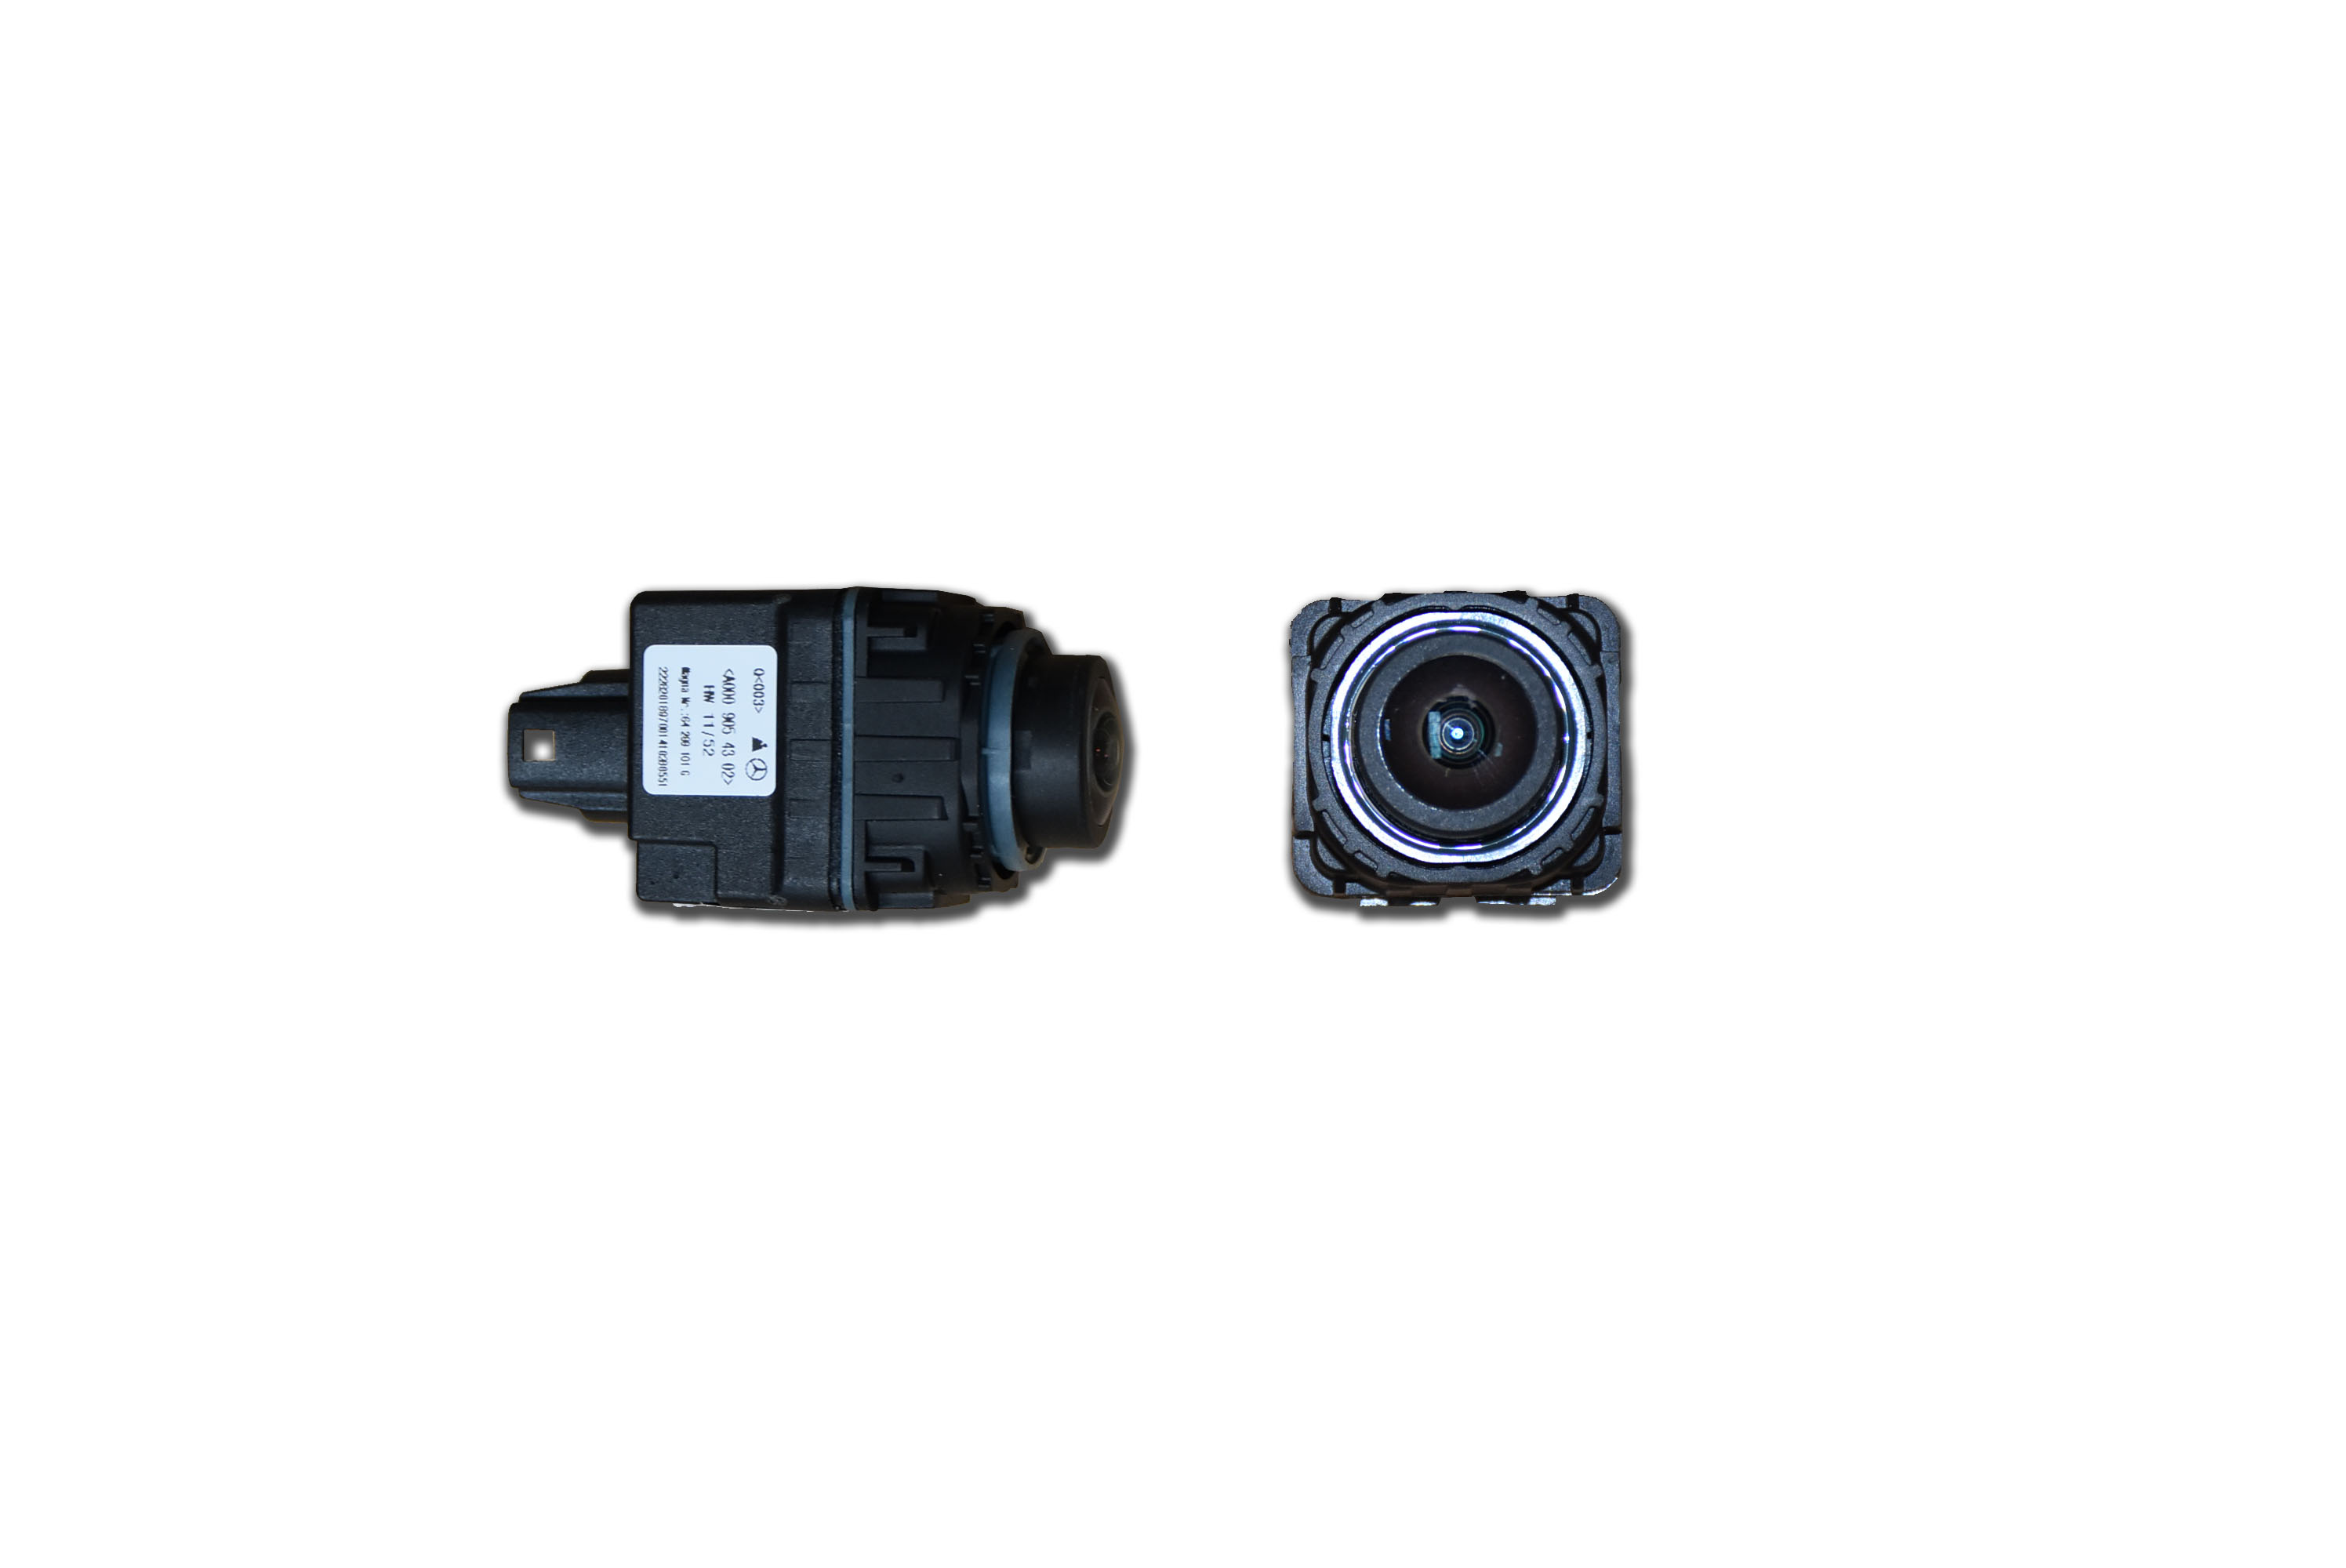 A0009054302 rear view camera